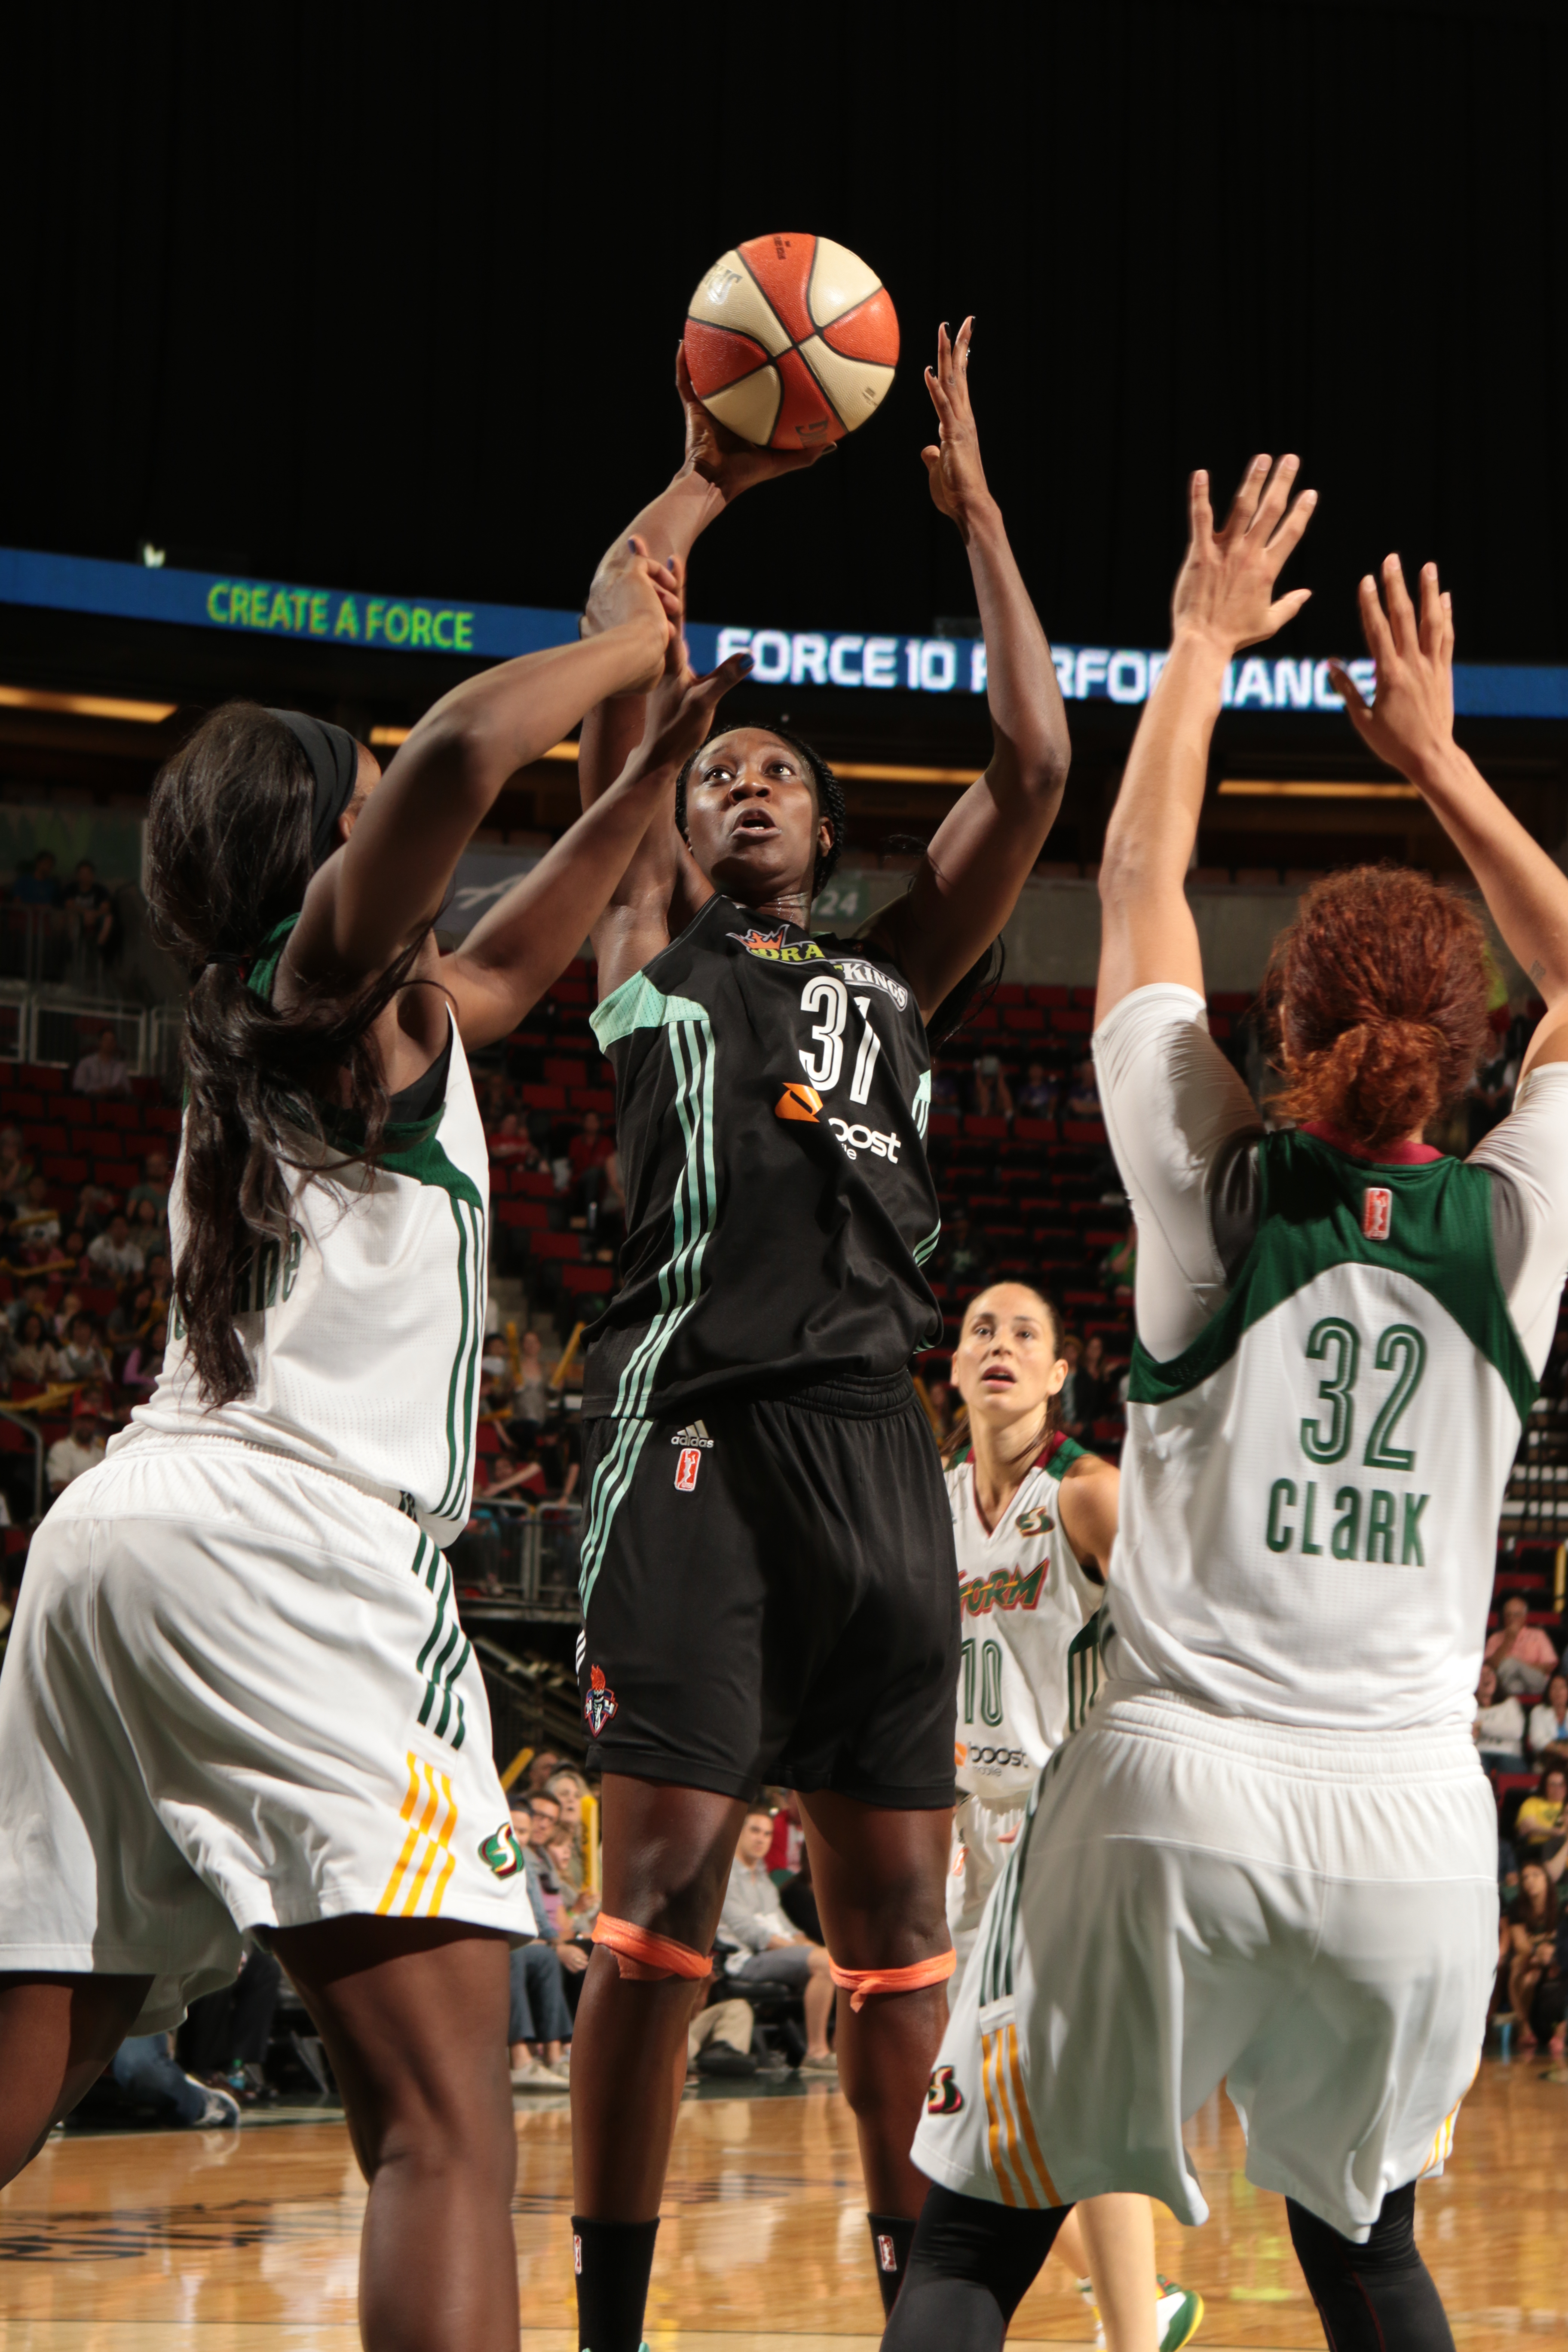 SEATTLE, WA - JULY 21: Tina Charles #31 of the New York Liberty takes a shot against the Seattle Storm on July 21, 2015 at Key Arena in Seattle, Washington. (Photo by Joshua Huston/NBAE via Getty Images)